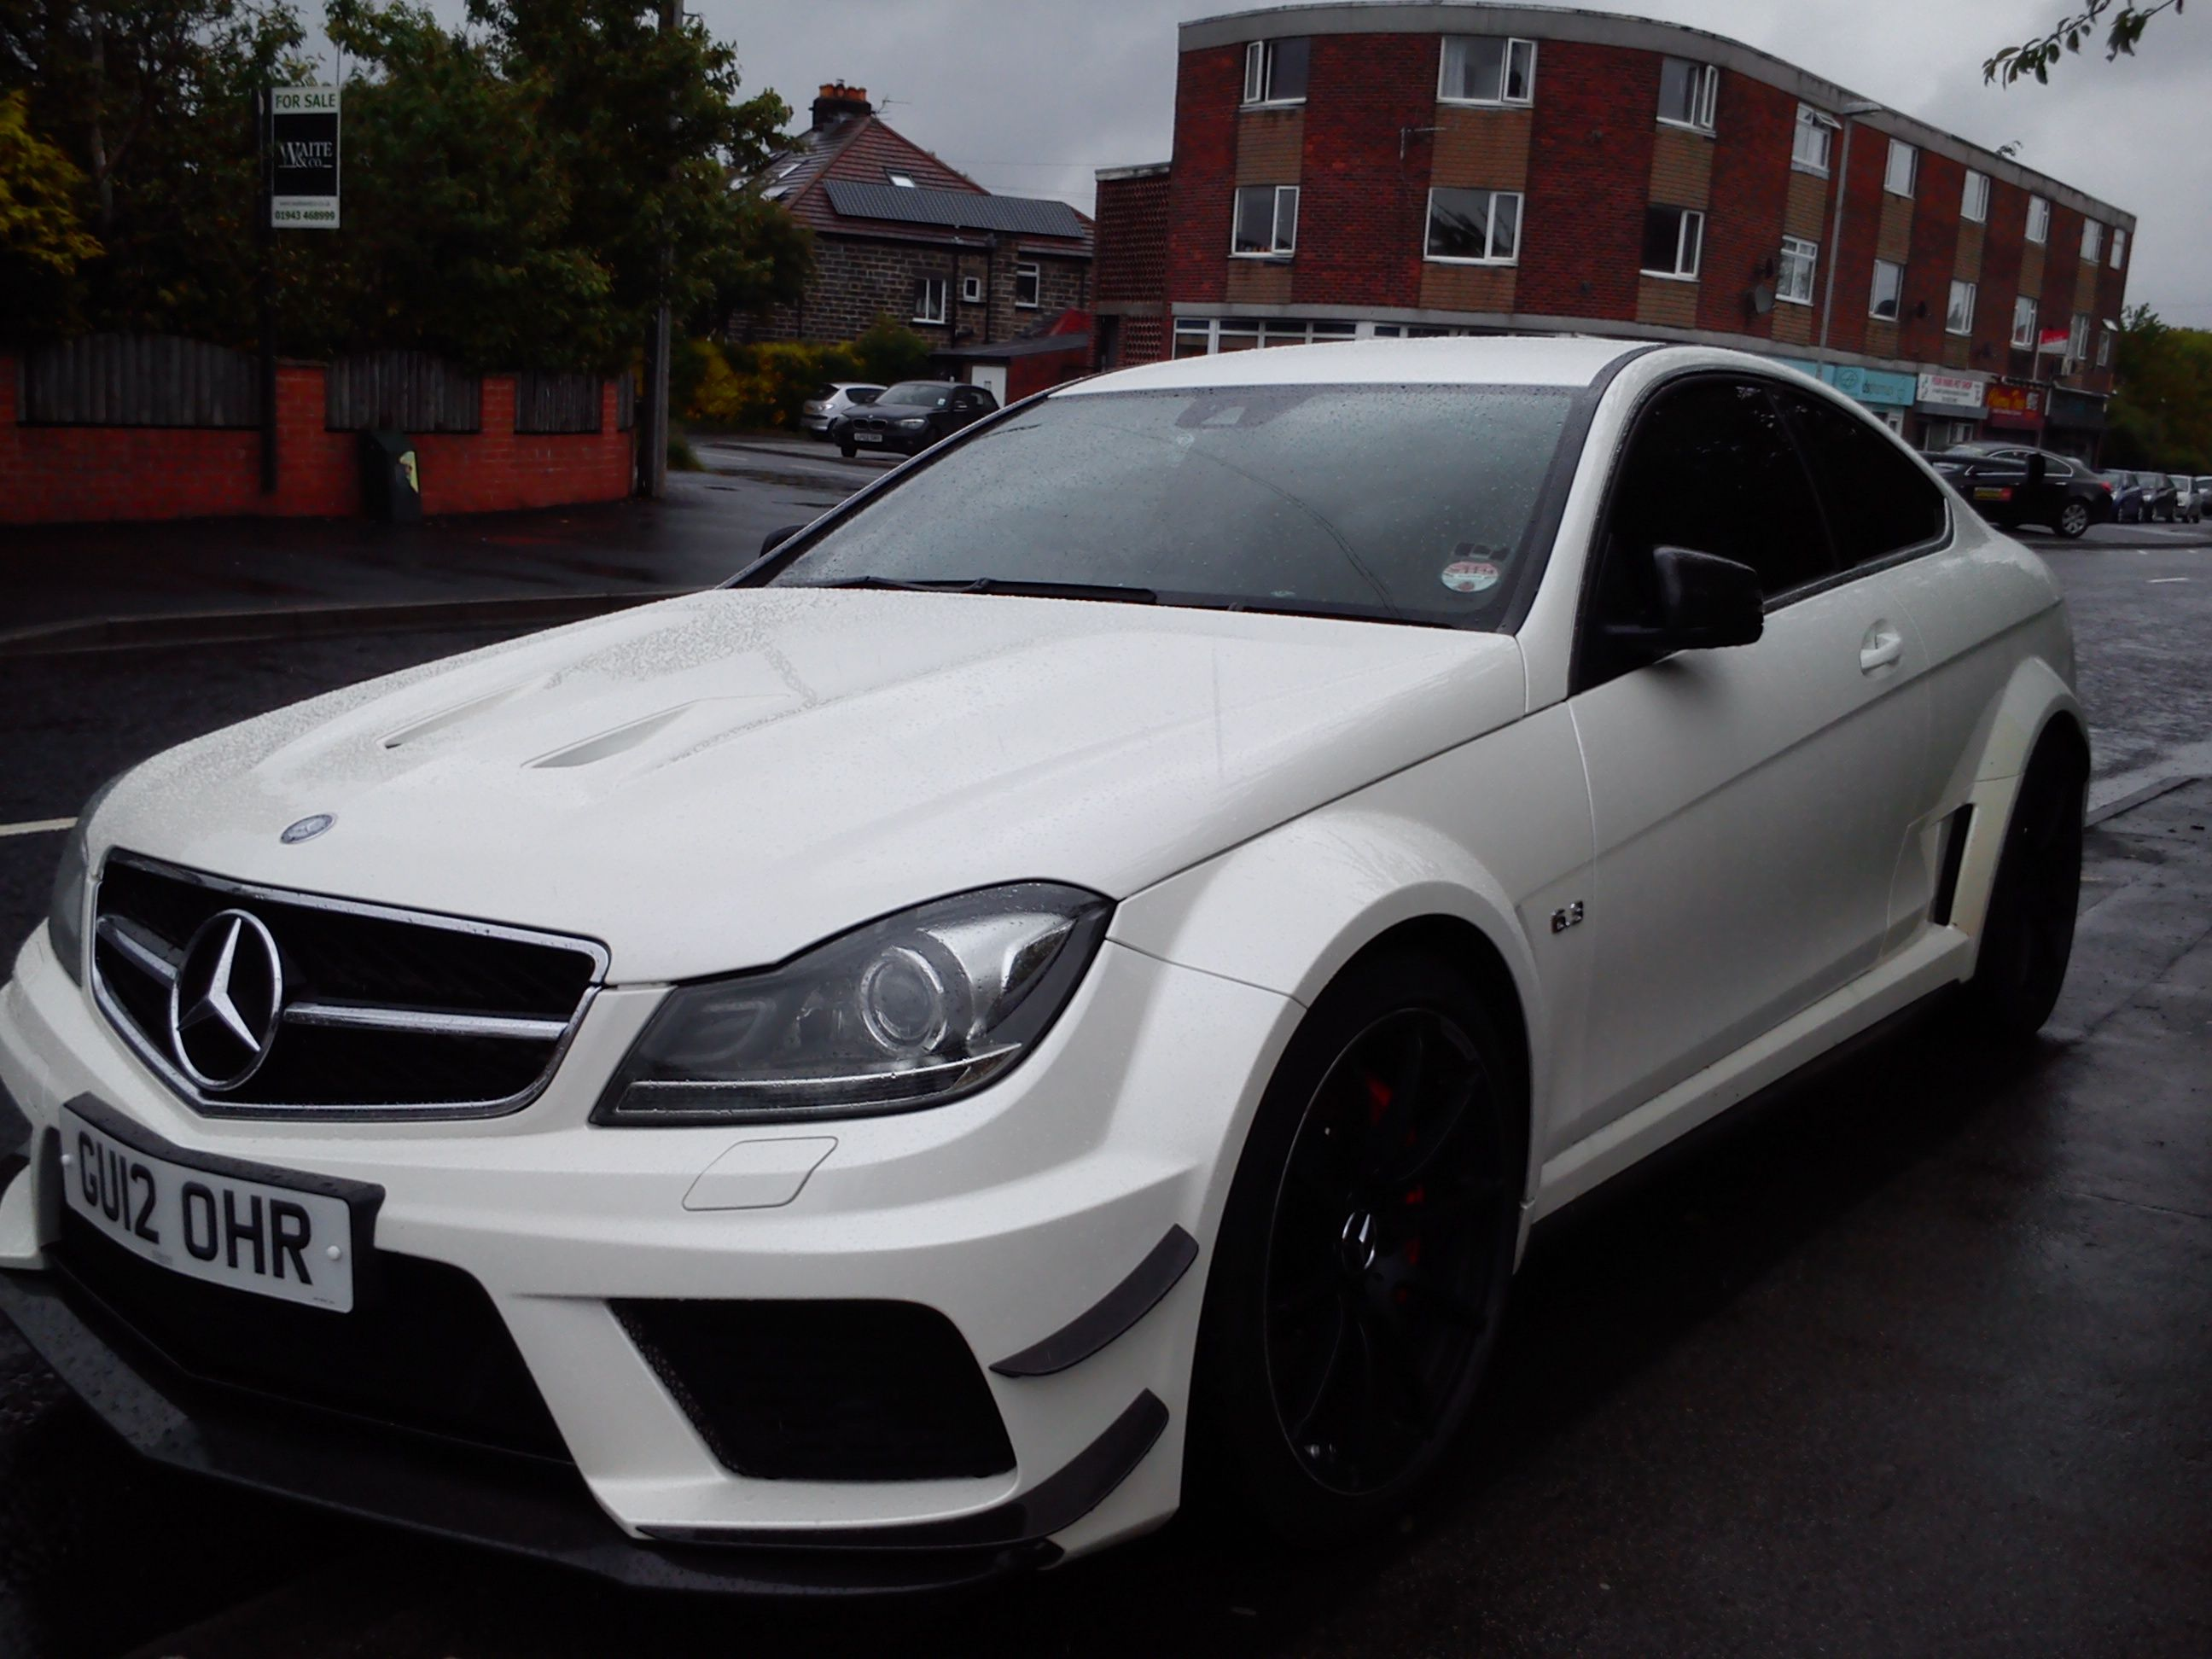 mercedes benz c63 amg black series in white with black rims brutal - Mercedes Benz C63 Amg Black Series White